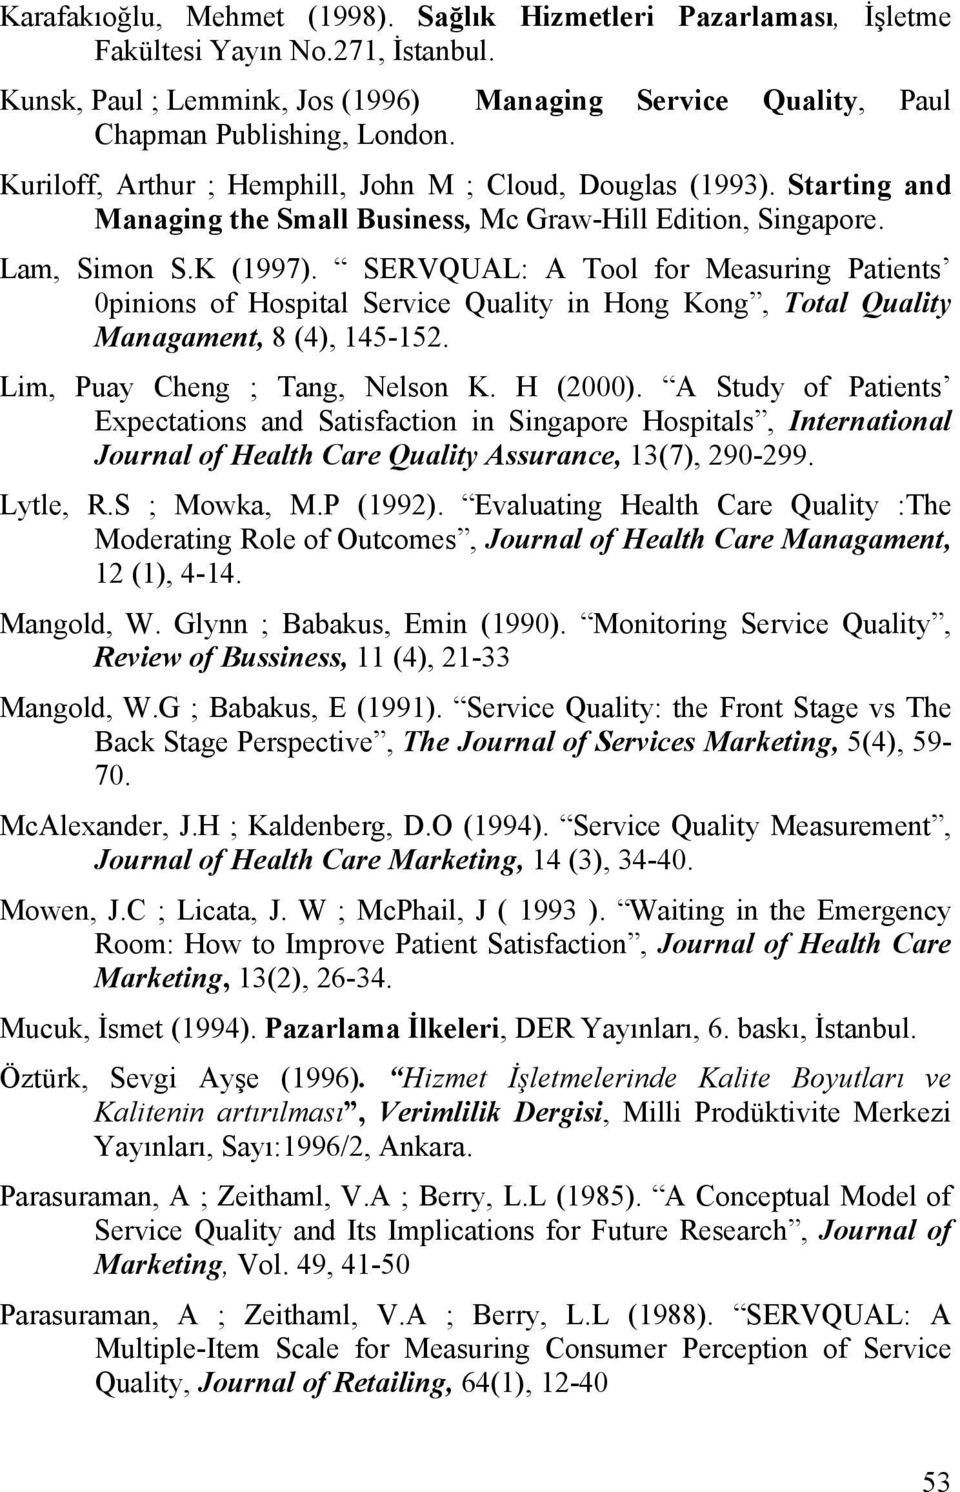 SERVQUAL: A Tool for Measuring Patients 0pinions of Hospital Service Quality in Hong Kong, Total Quality Managament, 8 (4), 145-152. Lim, Puay Cheng ; Tang, Nelson K. H (2000).